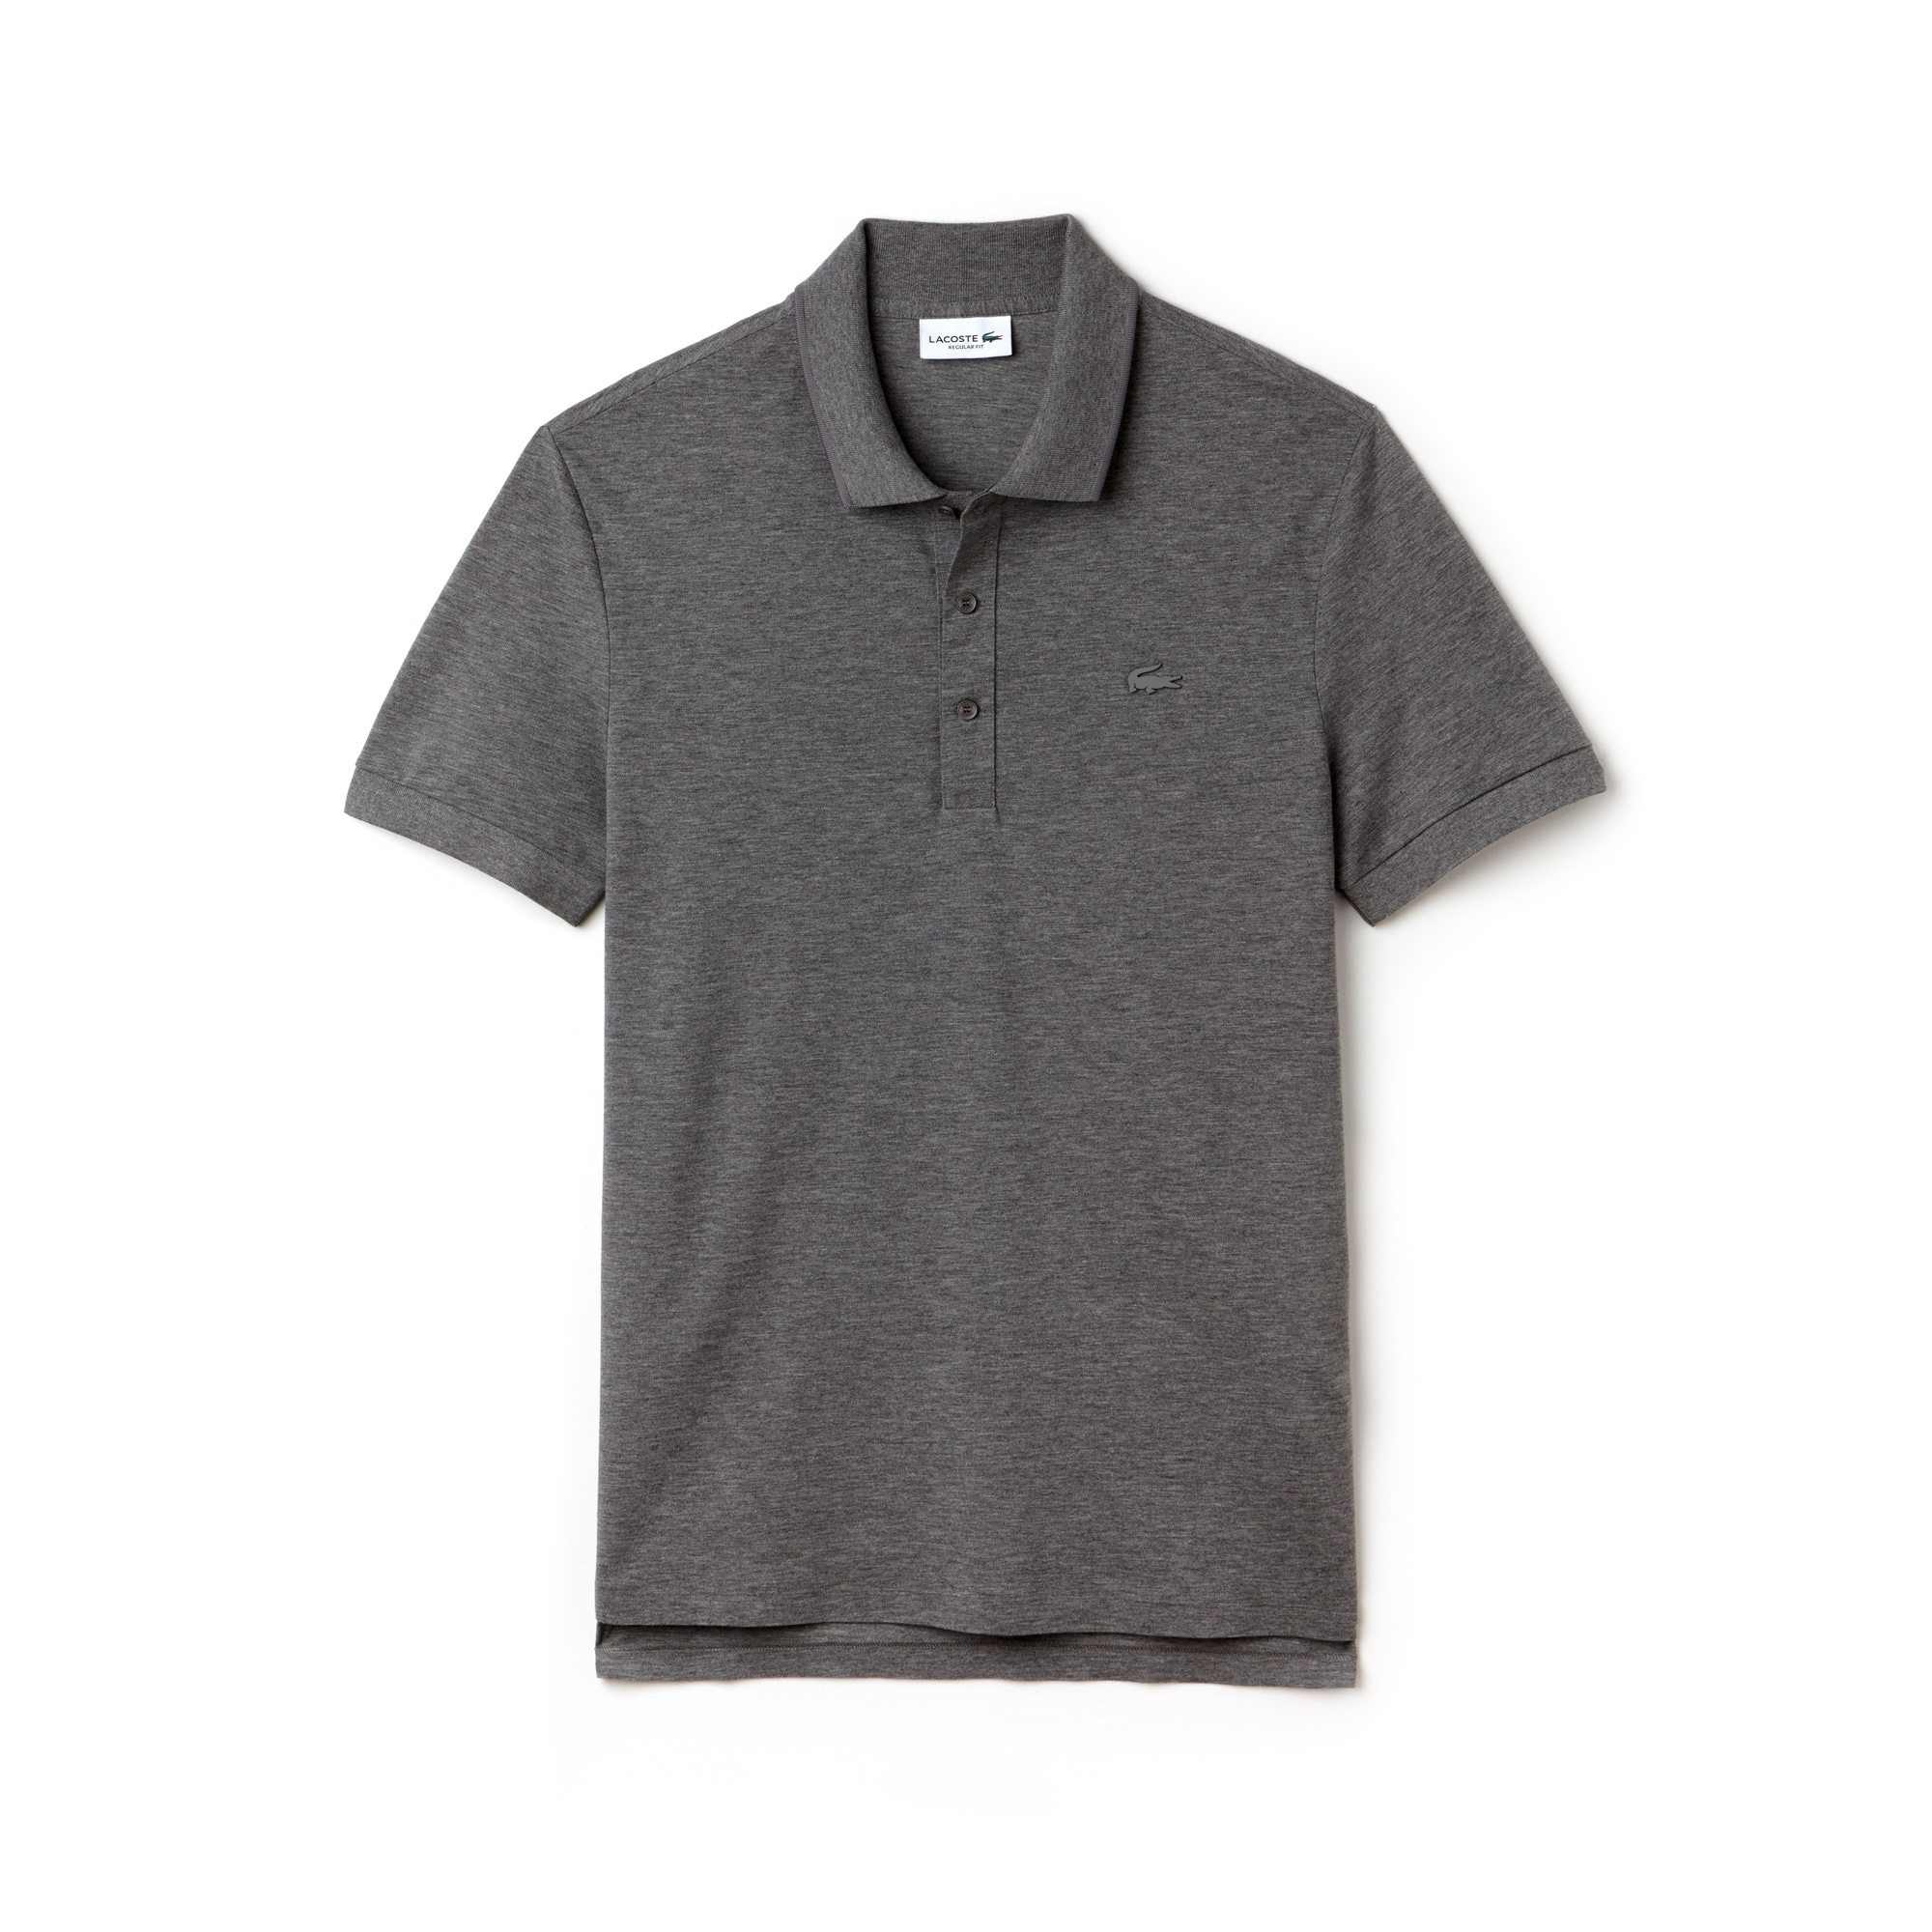 Men's Lacoste MOTION Regular Fit Pima Cotton Piqué Polo Shirt